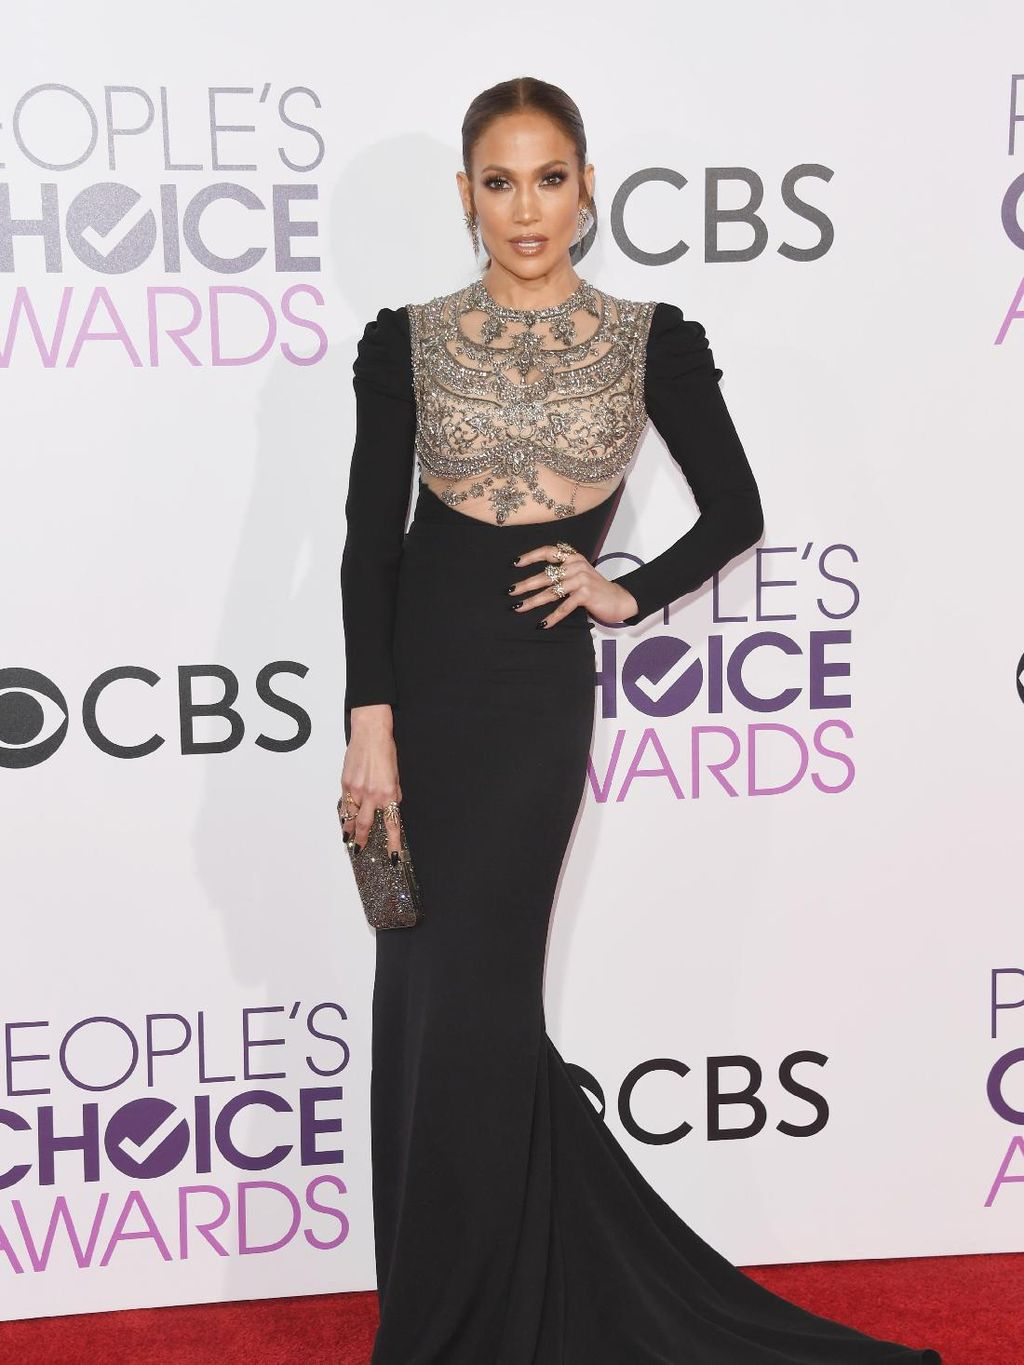 10 Selebriti Berbusana Terbaik di Peoples Choice Awards 2017